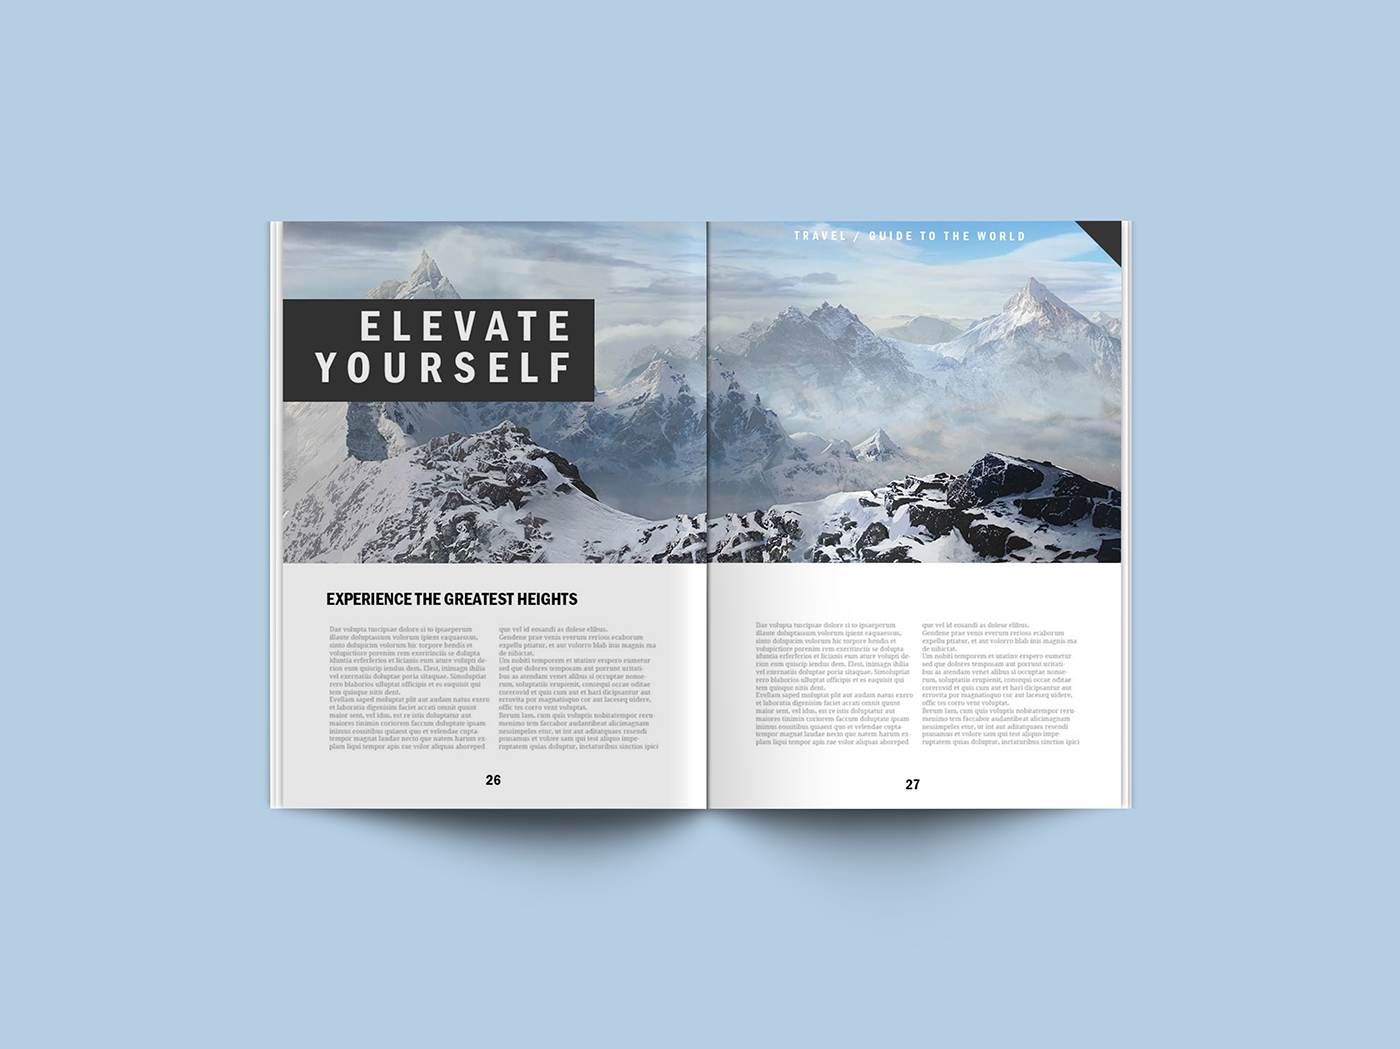 Free Download Magazine Mockup Template Webdesigner Depot